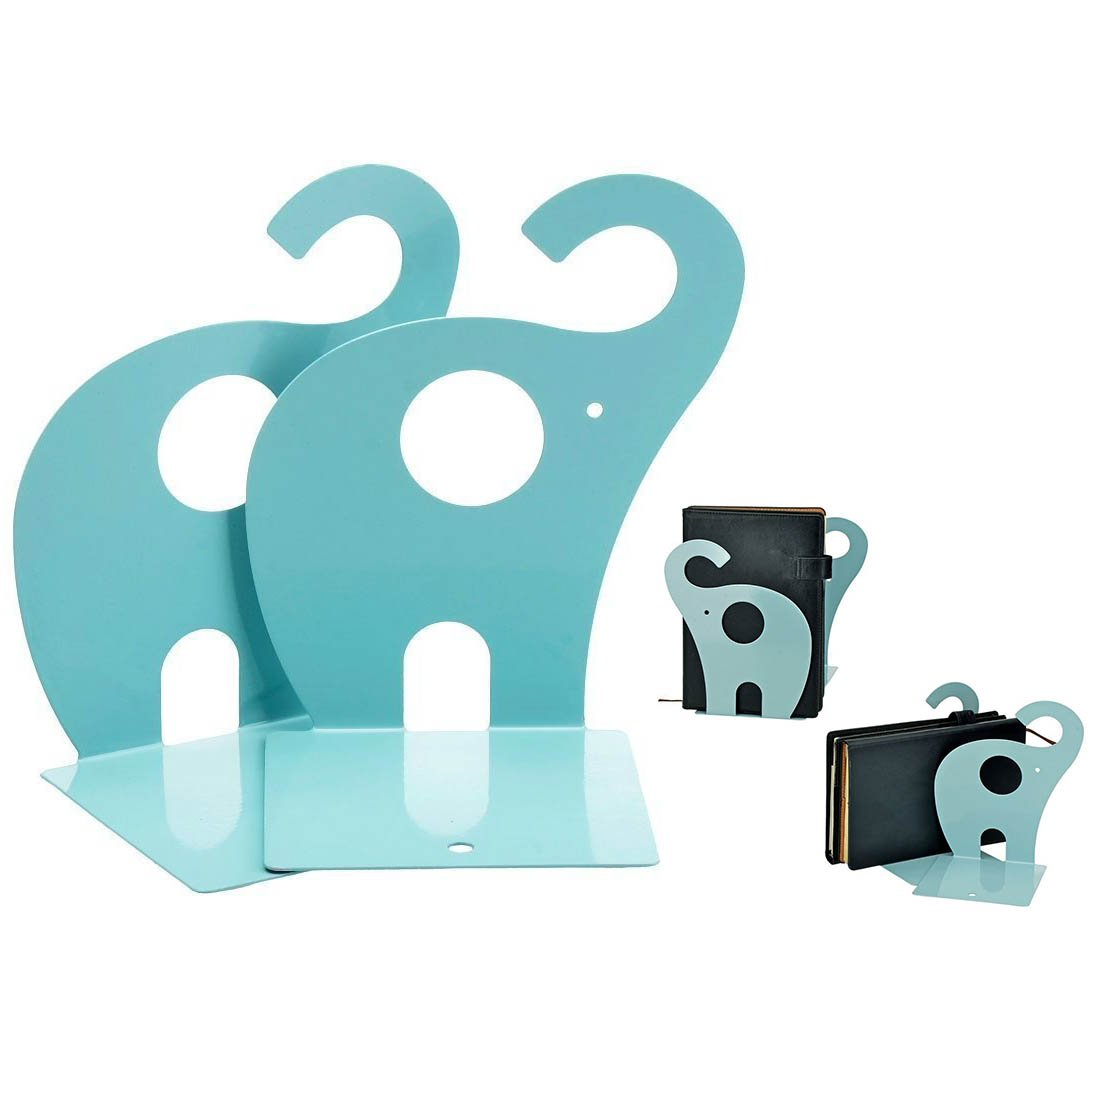 Itian Cute Elephant Bookends Nonskid Art Bookend Gift Blue 1 Pair